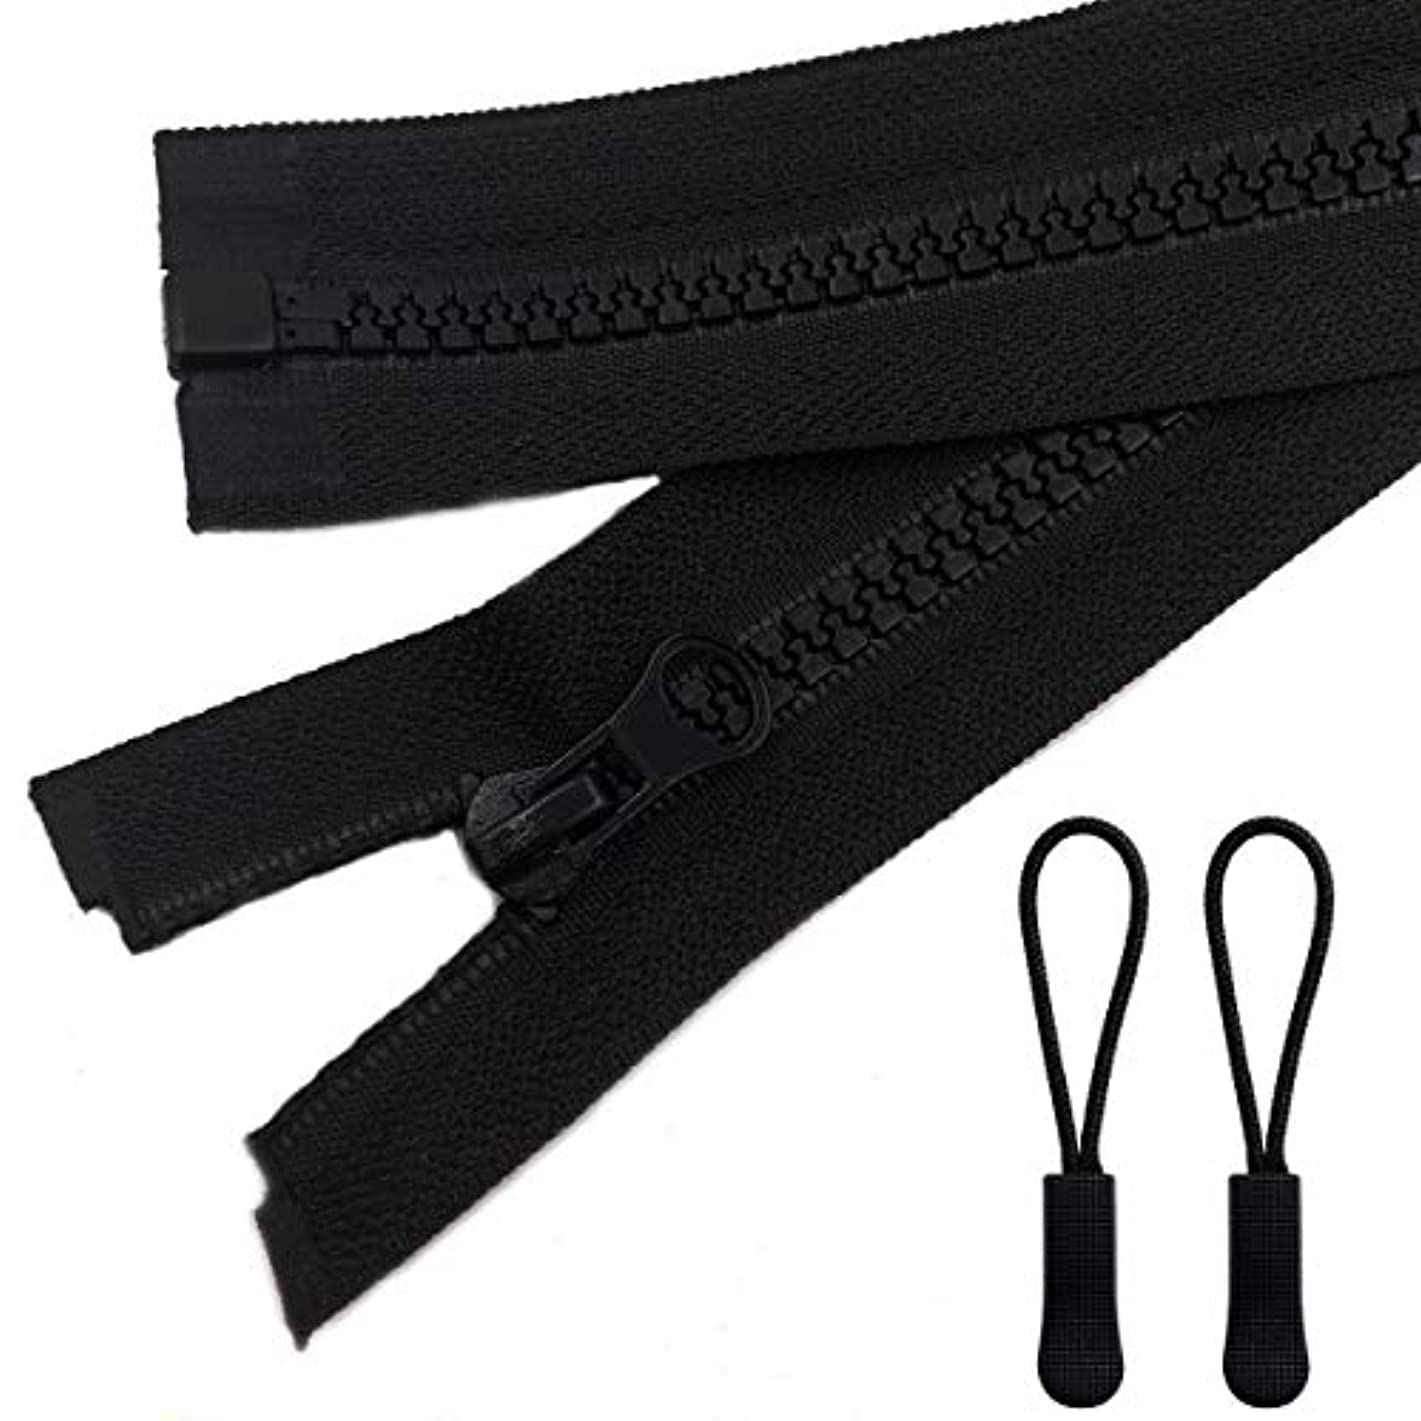 2pcs 24inch Separating Bottom Zipper #5 Black Plastic Jacket Zippers with Zipper Pulls for Coats, Bags, Jackets, and Other Sewing Crafts (24 inch)